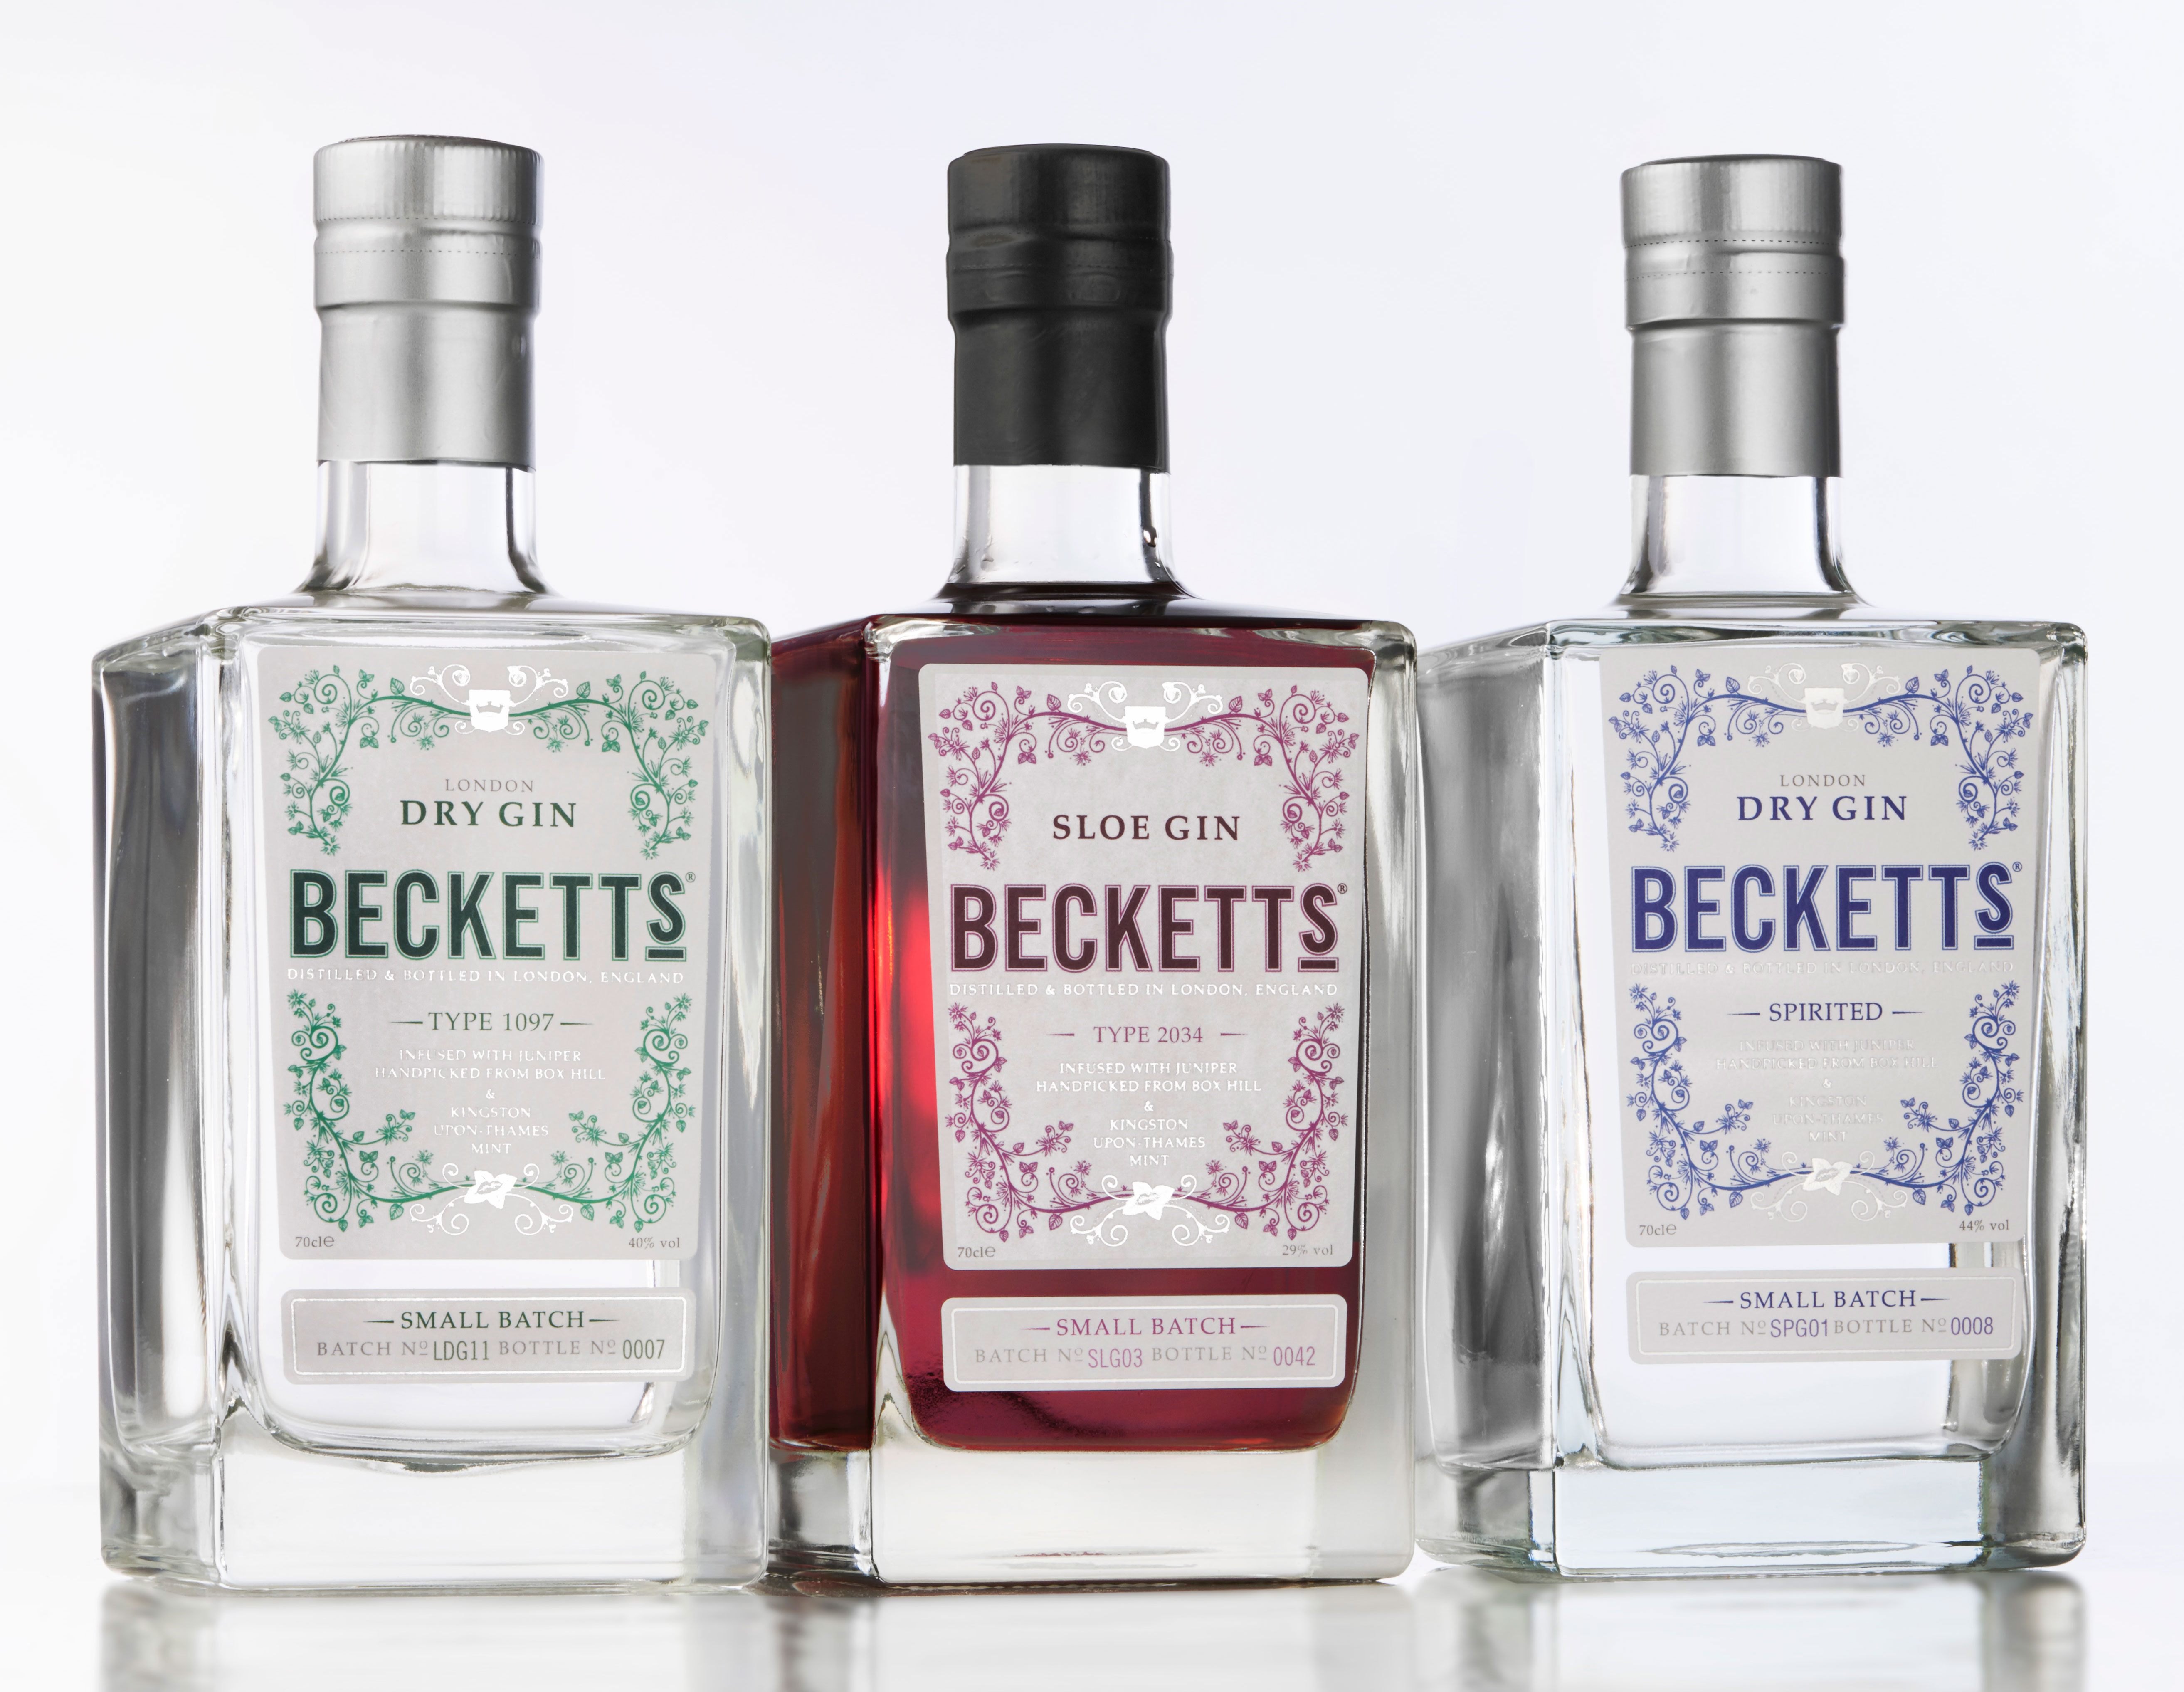 Becketts Gin bottles Spirited, Sloe Gin and London Gin on a white background